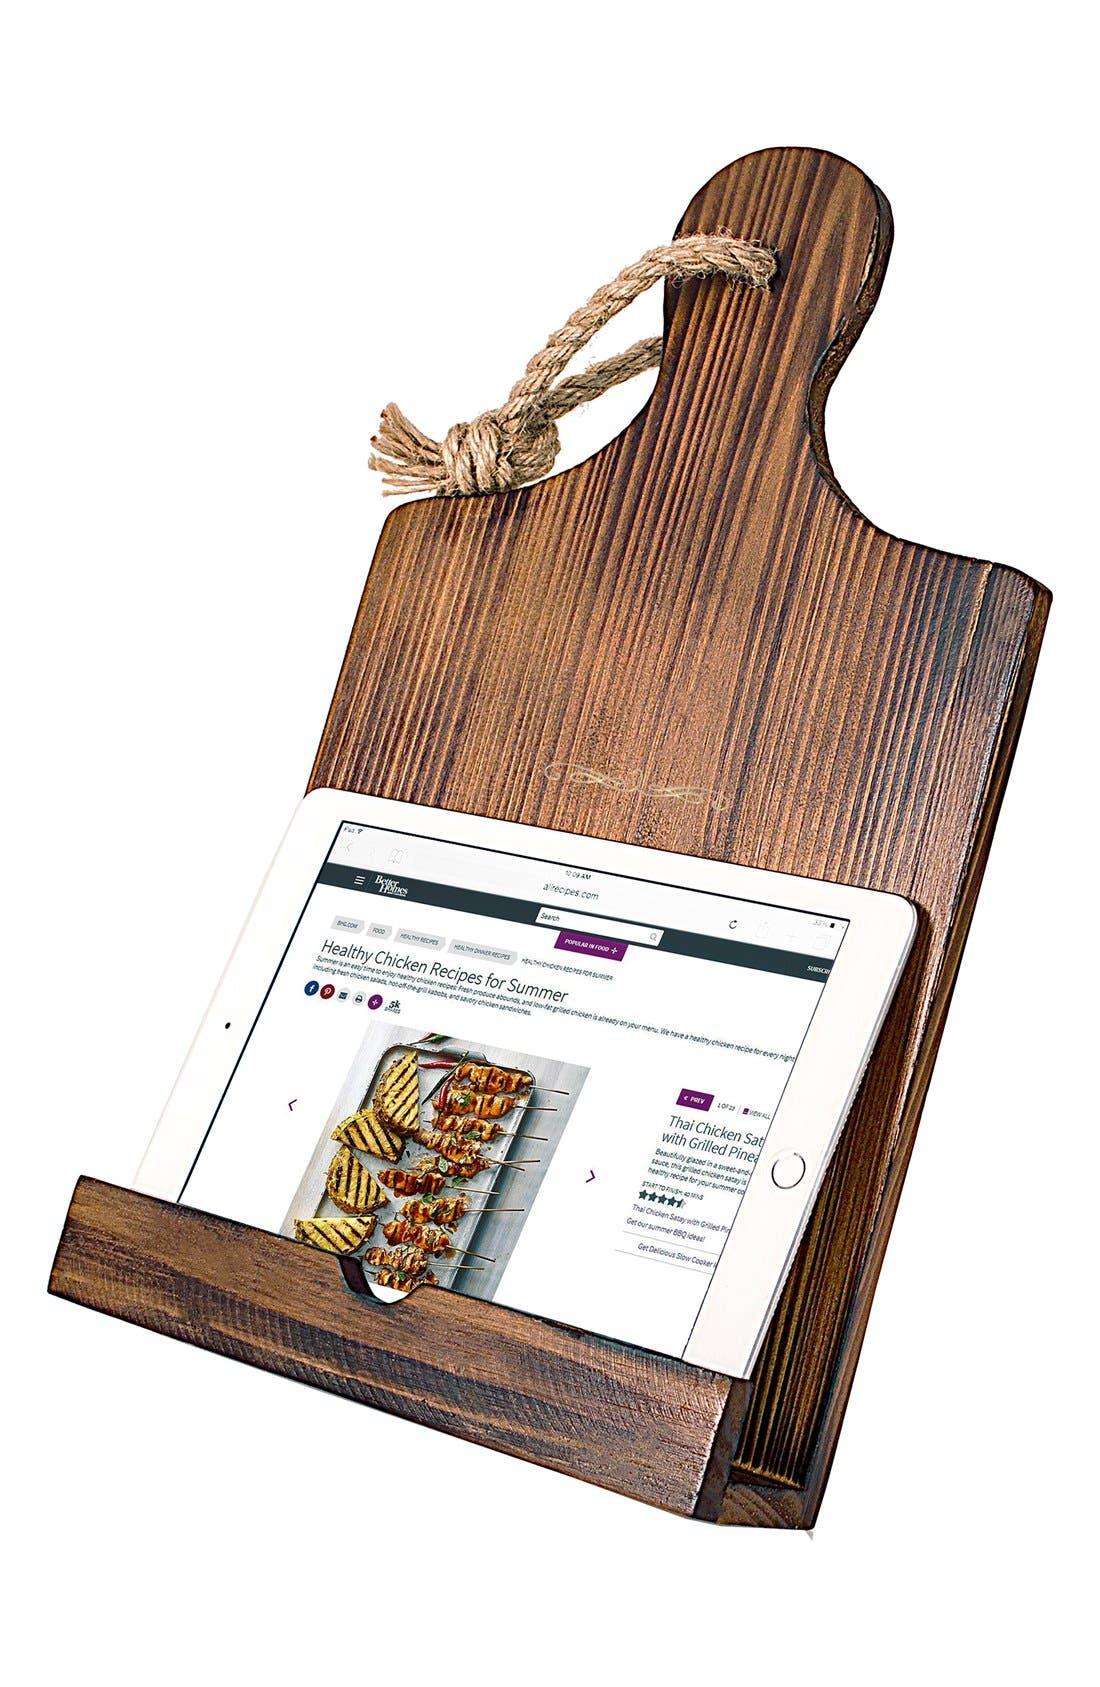 'Mother's Day' Wooden Tablet/Book Stand,                             Alternate thumbnail 3, color,                             200